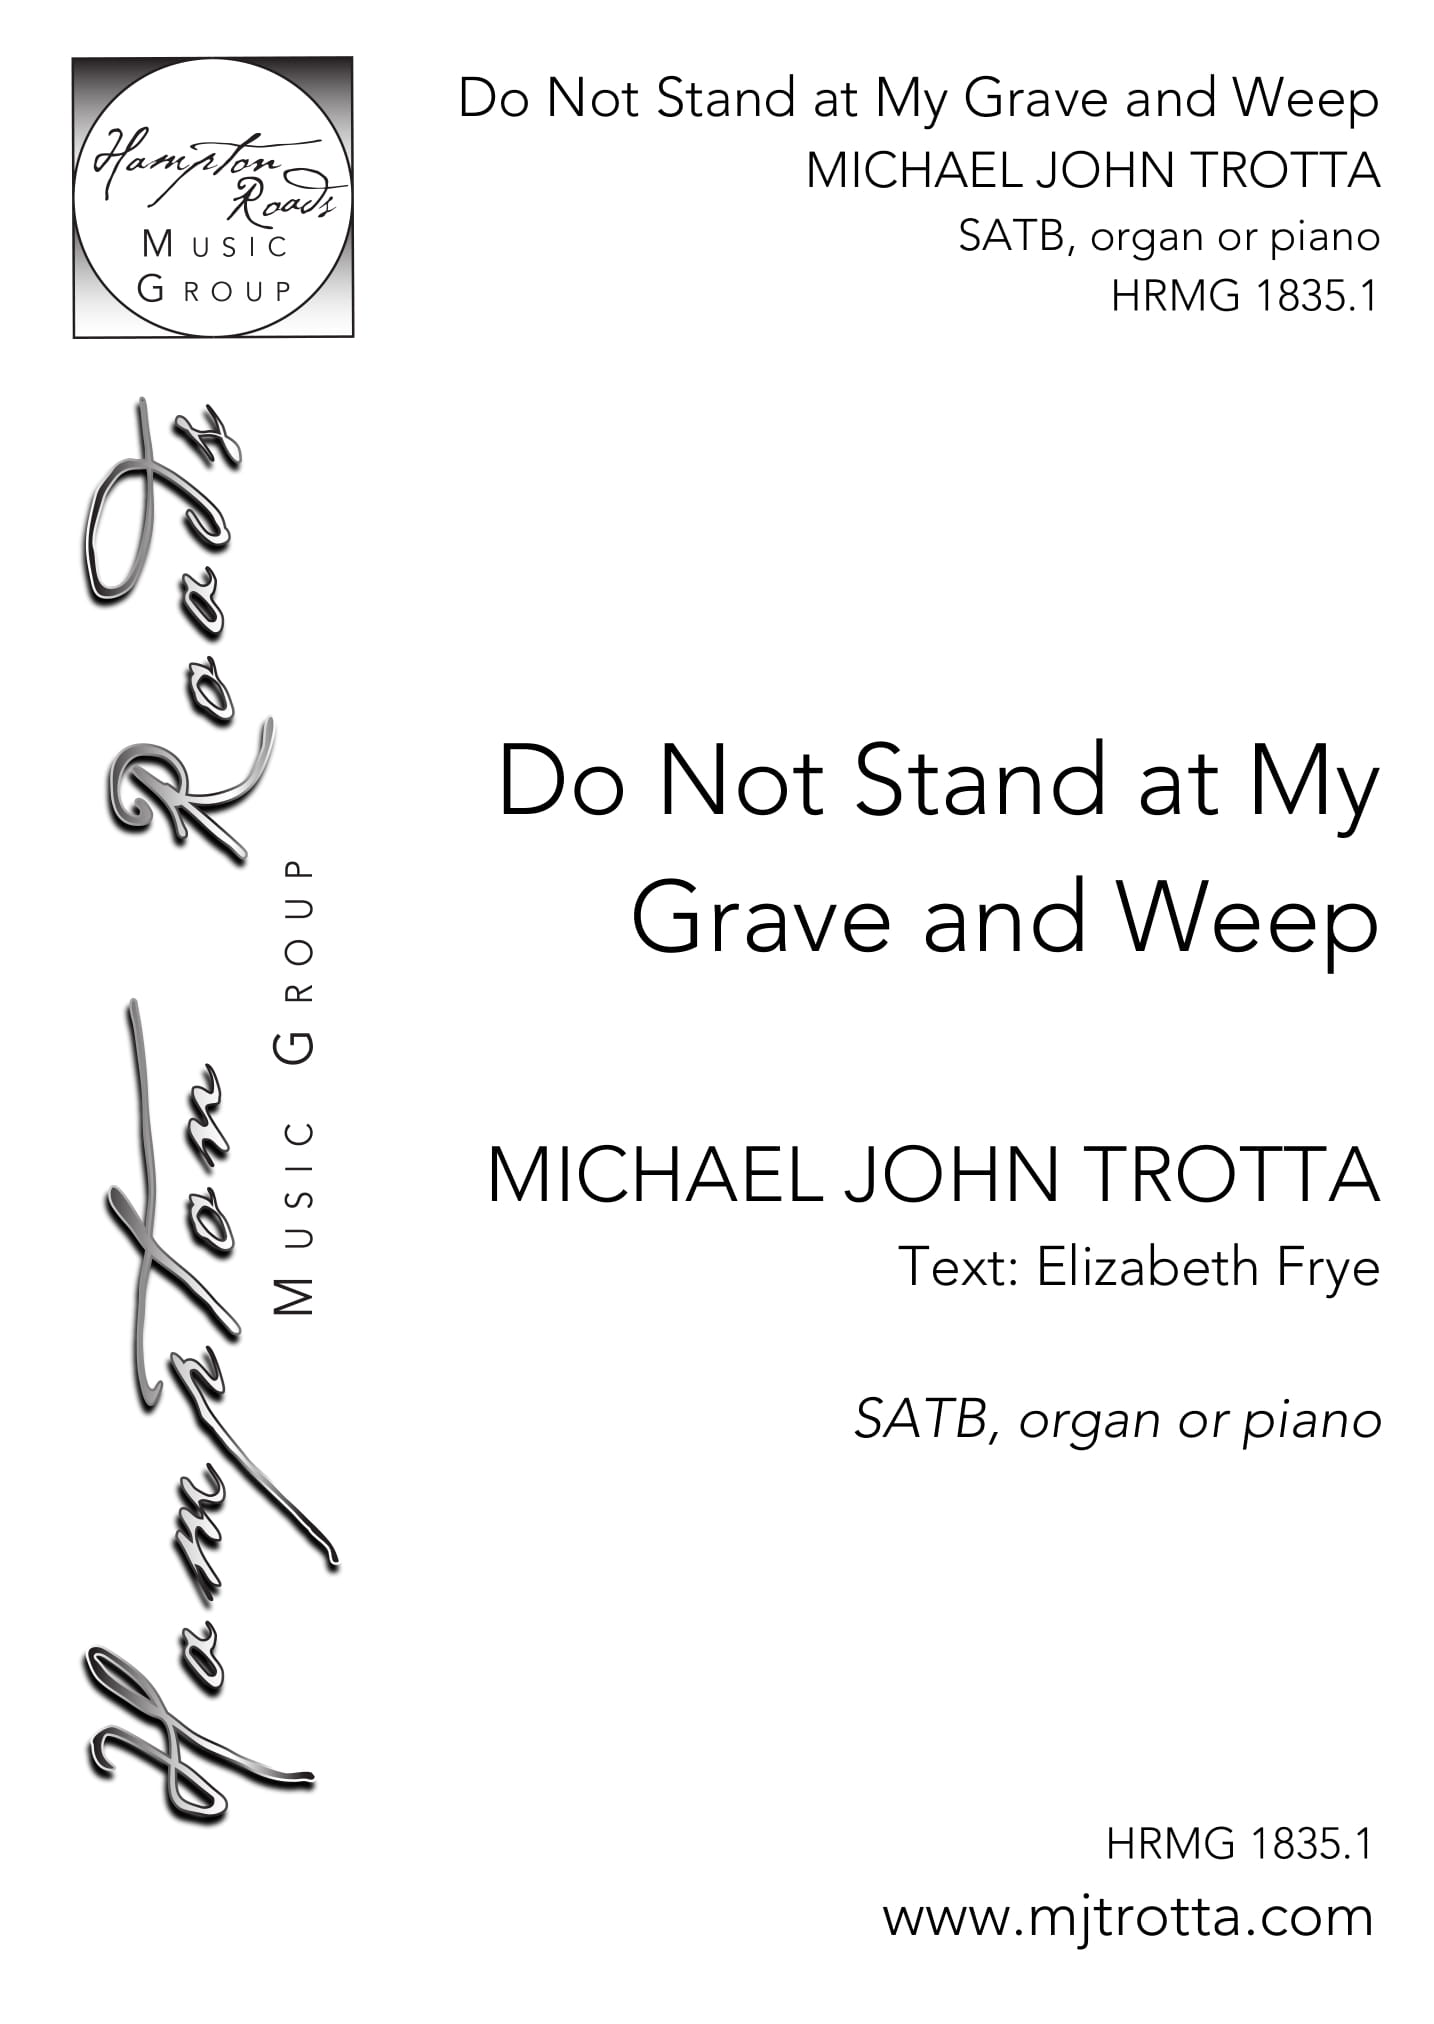 Do Not Stand at My Grave and Weep-2-01